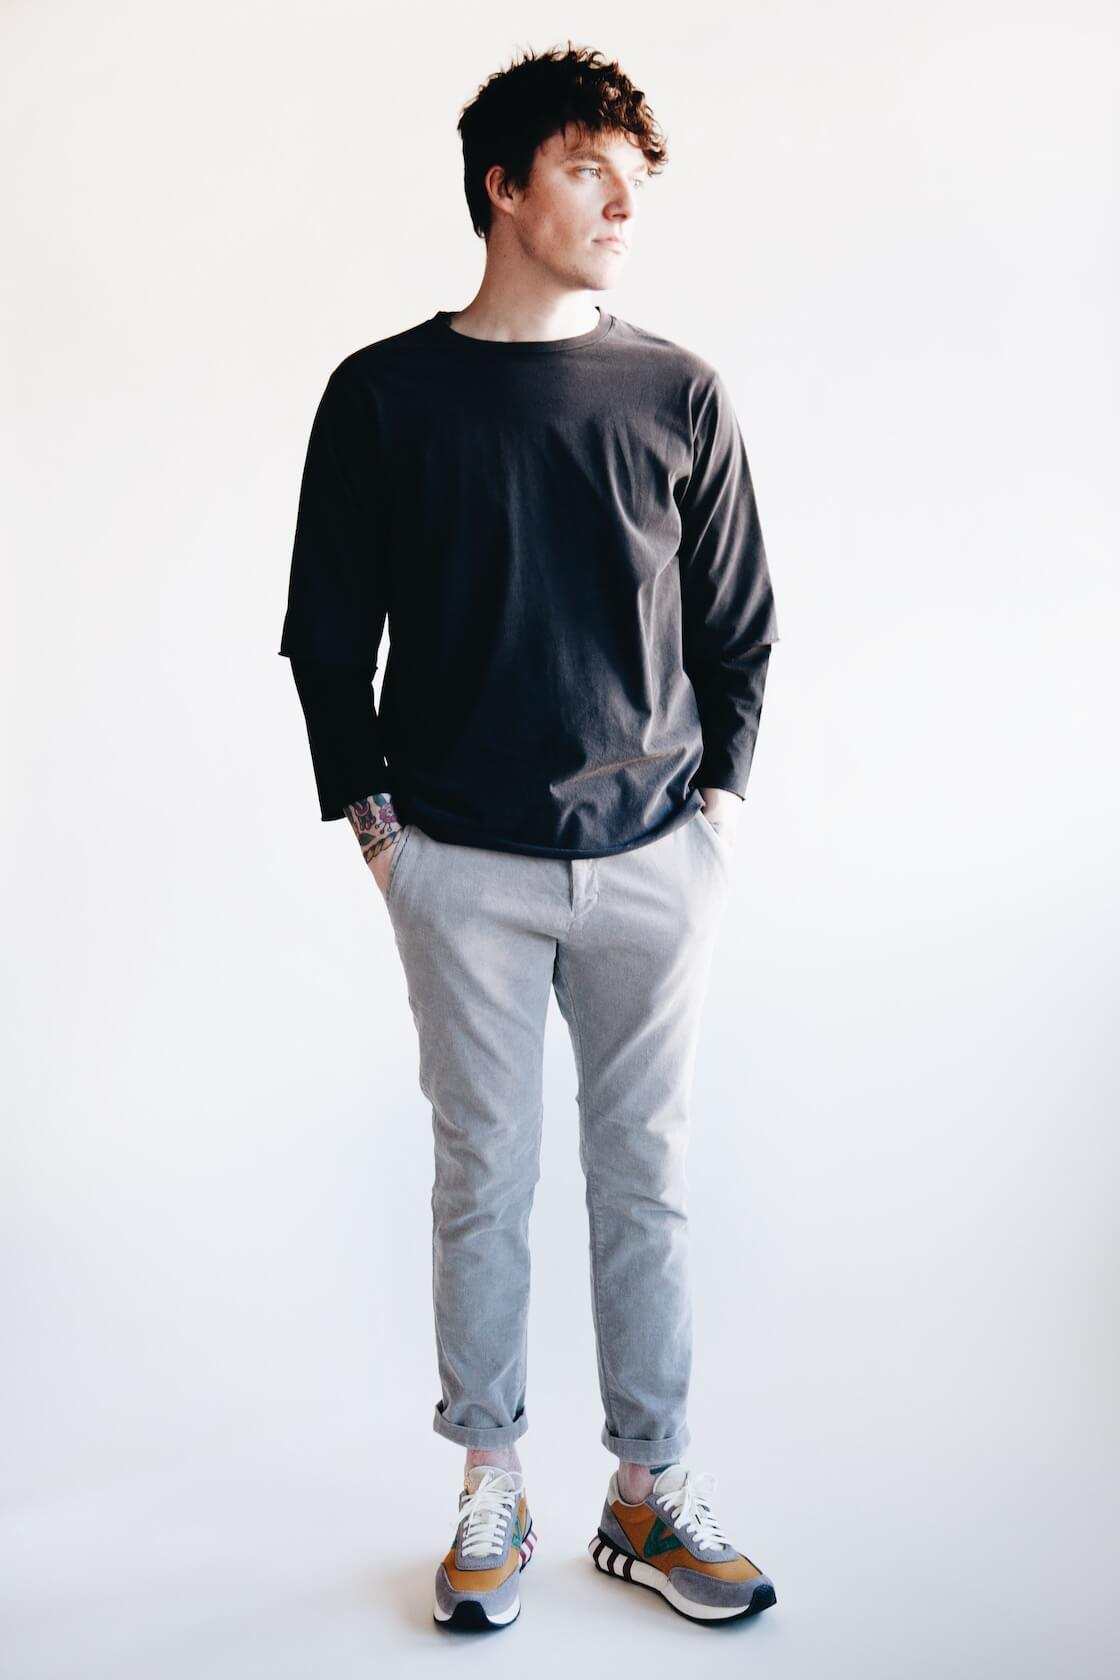 remi relief jersey grunge double neck long sleeve tee, stretched corduroy slacks and visvim attica trainer shoes on body